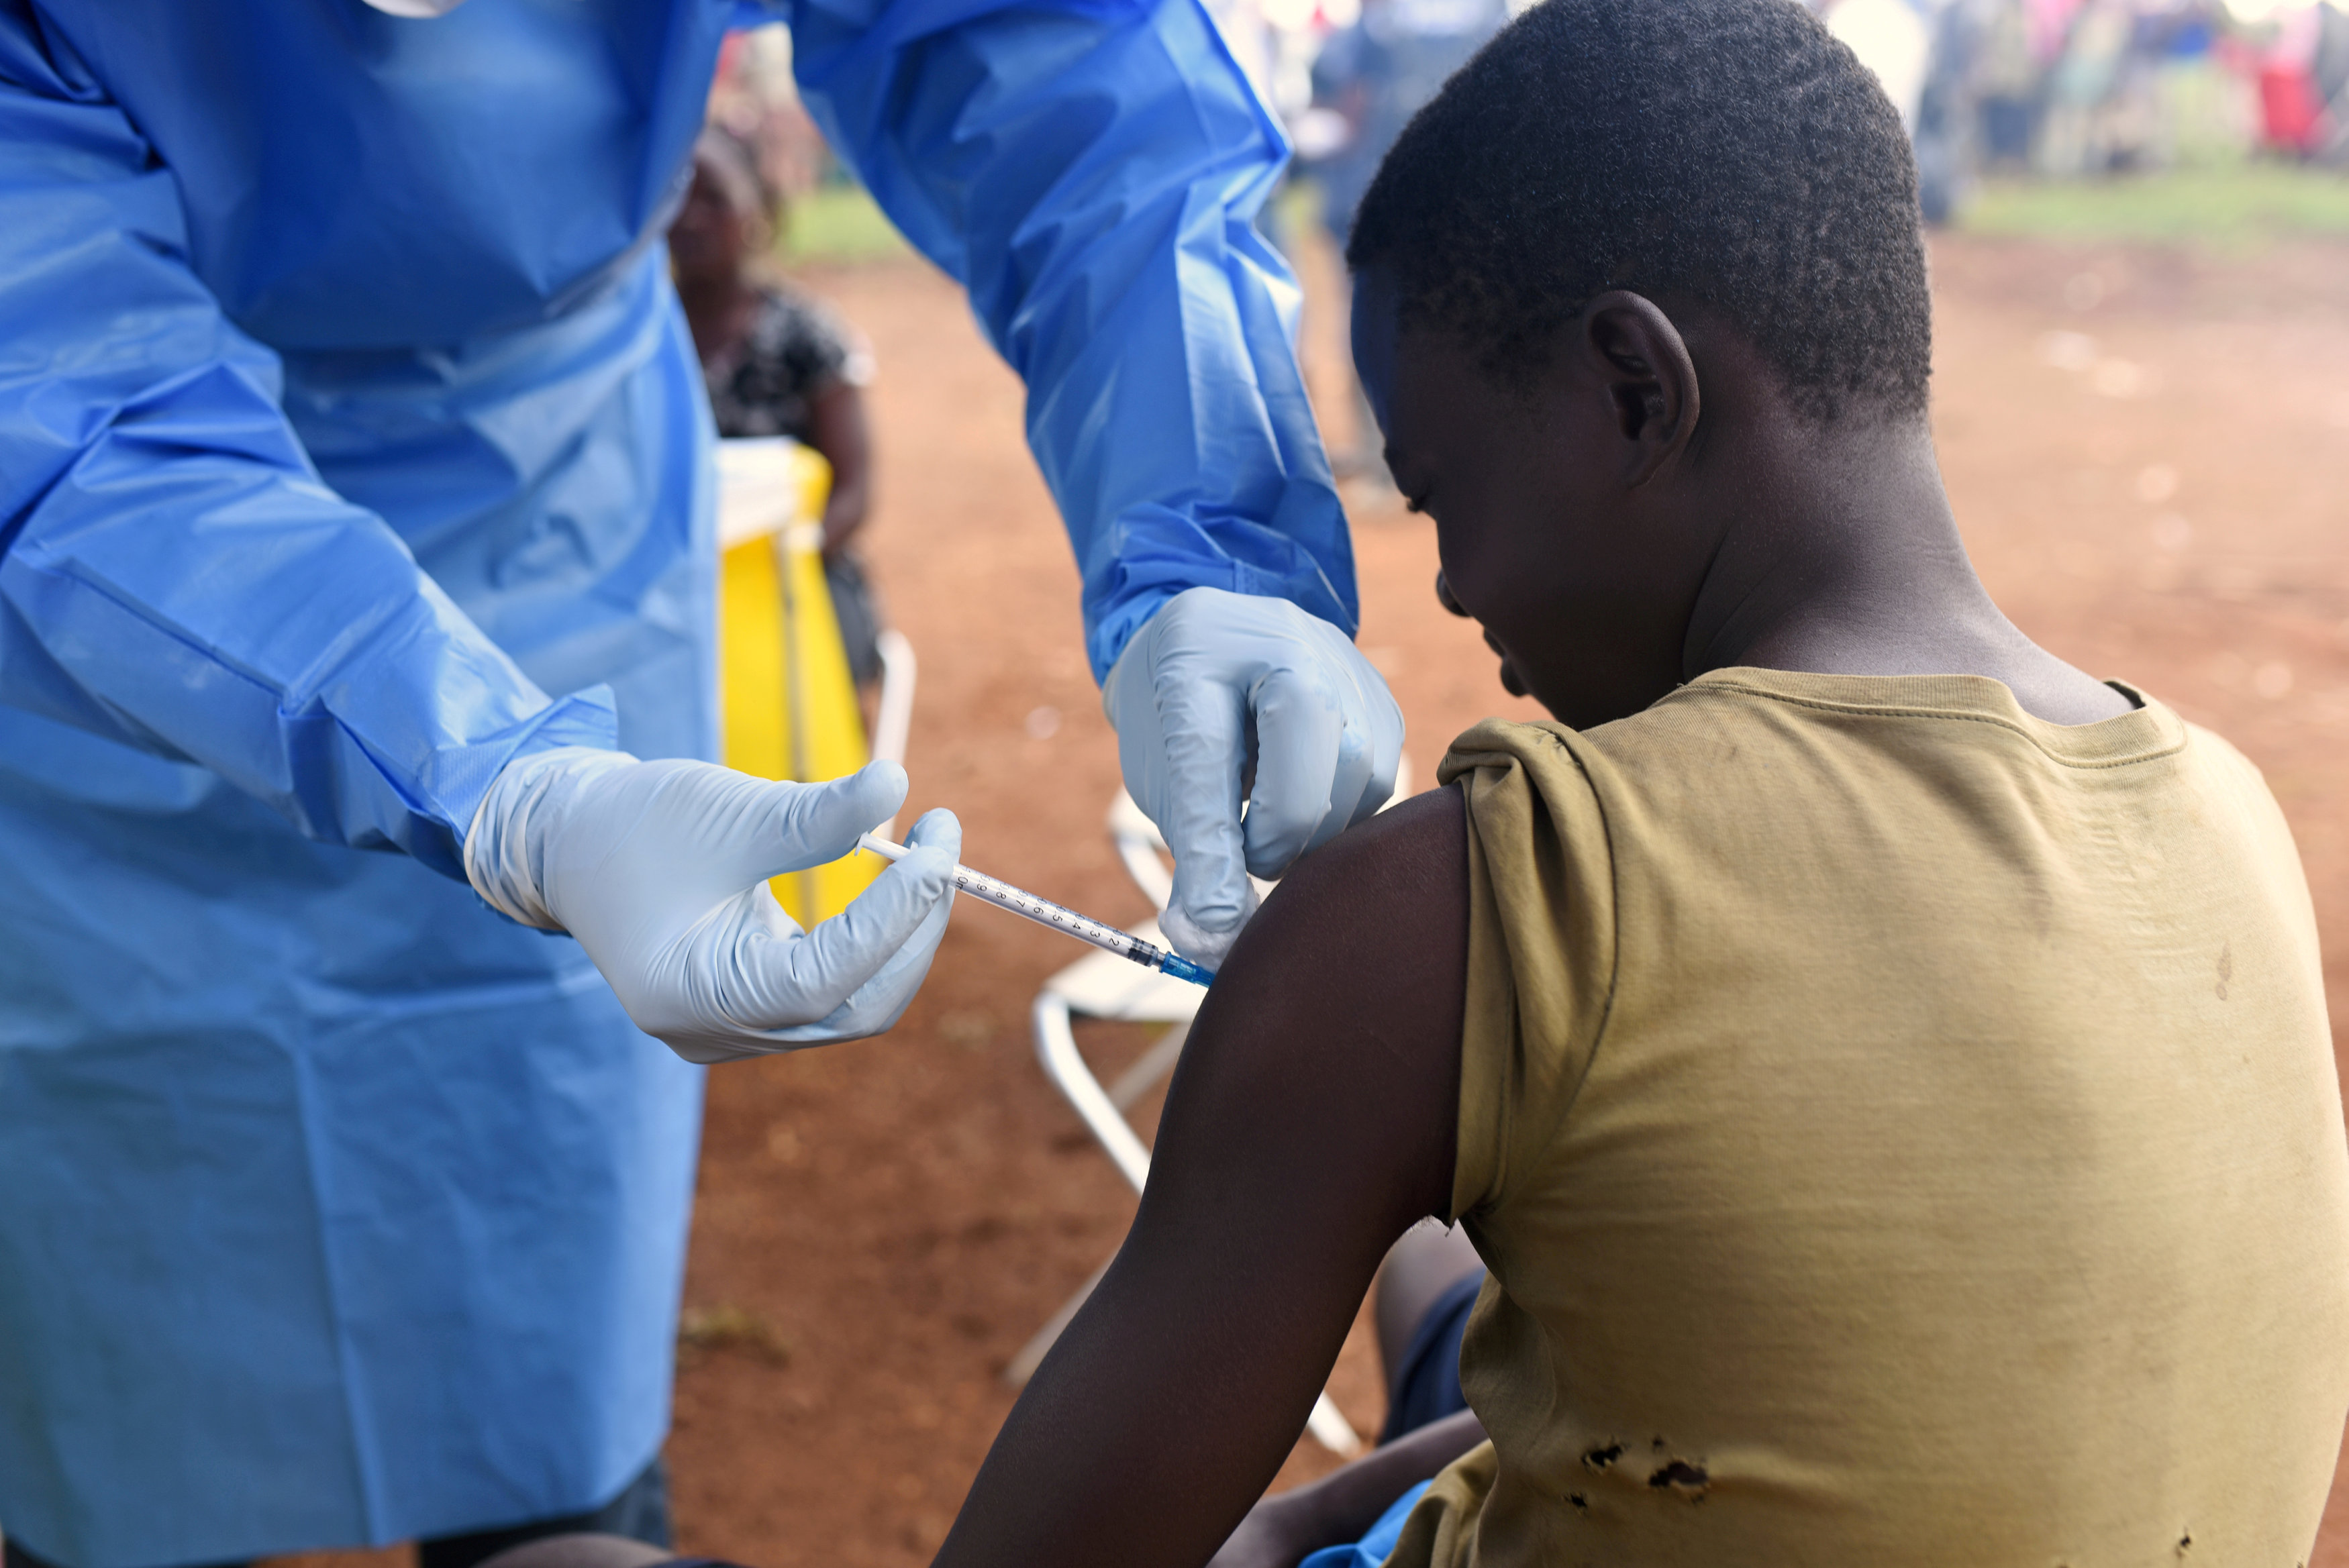 CDC director warns that Congo's Ebola outbreak may not be containable